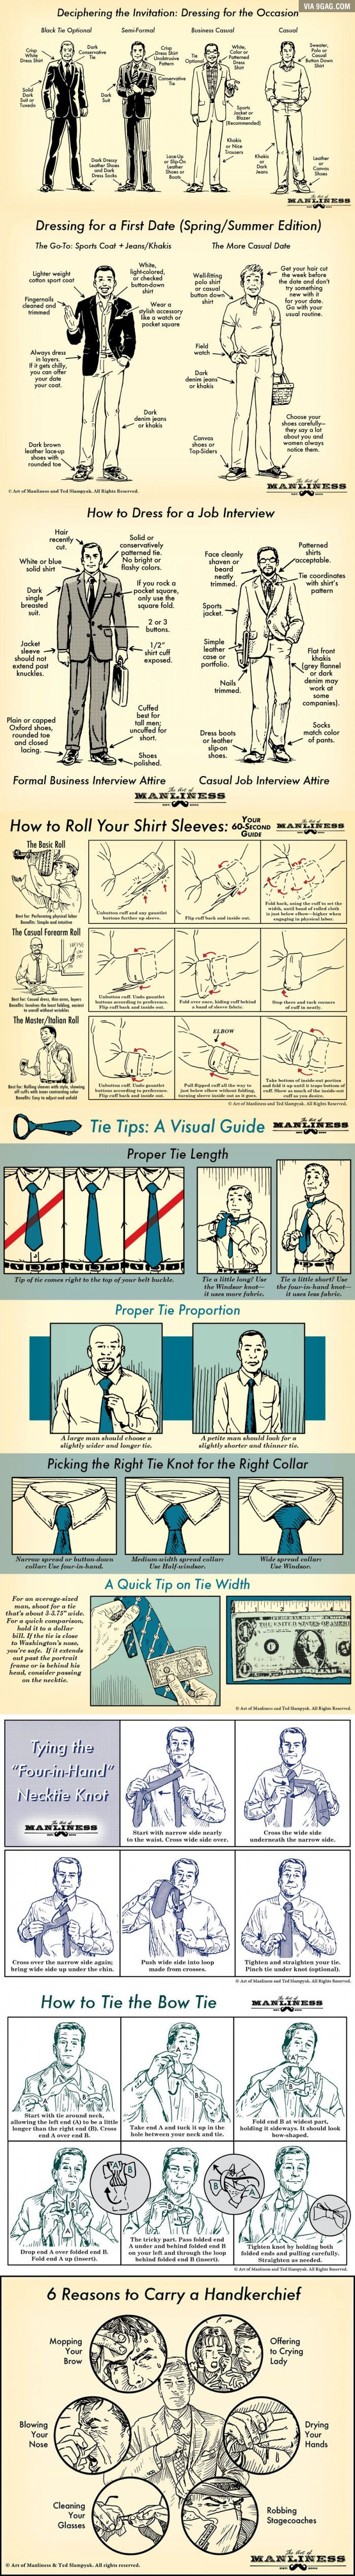 Let's Dress Manly! | #Infographic repinned by @Piktochart | Create yours at www.piktochart.com